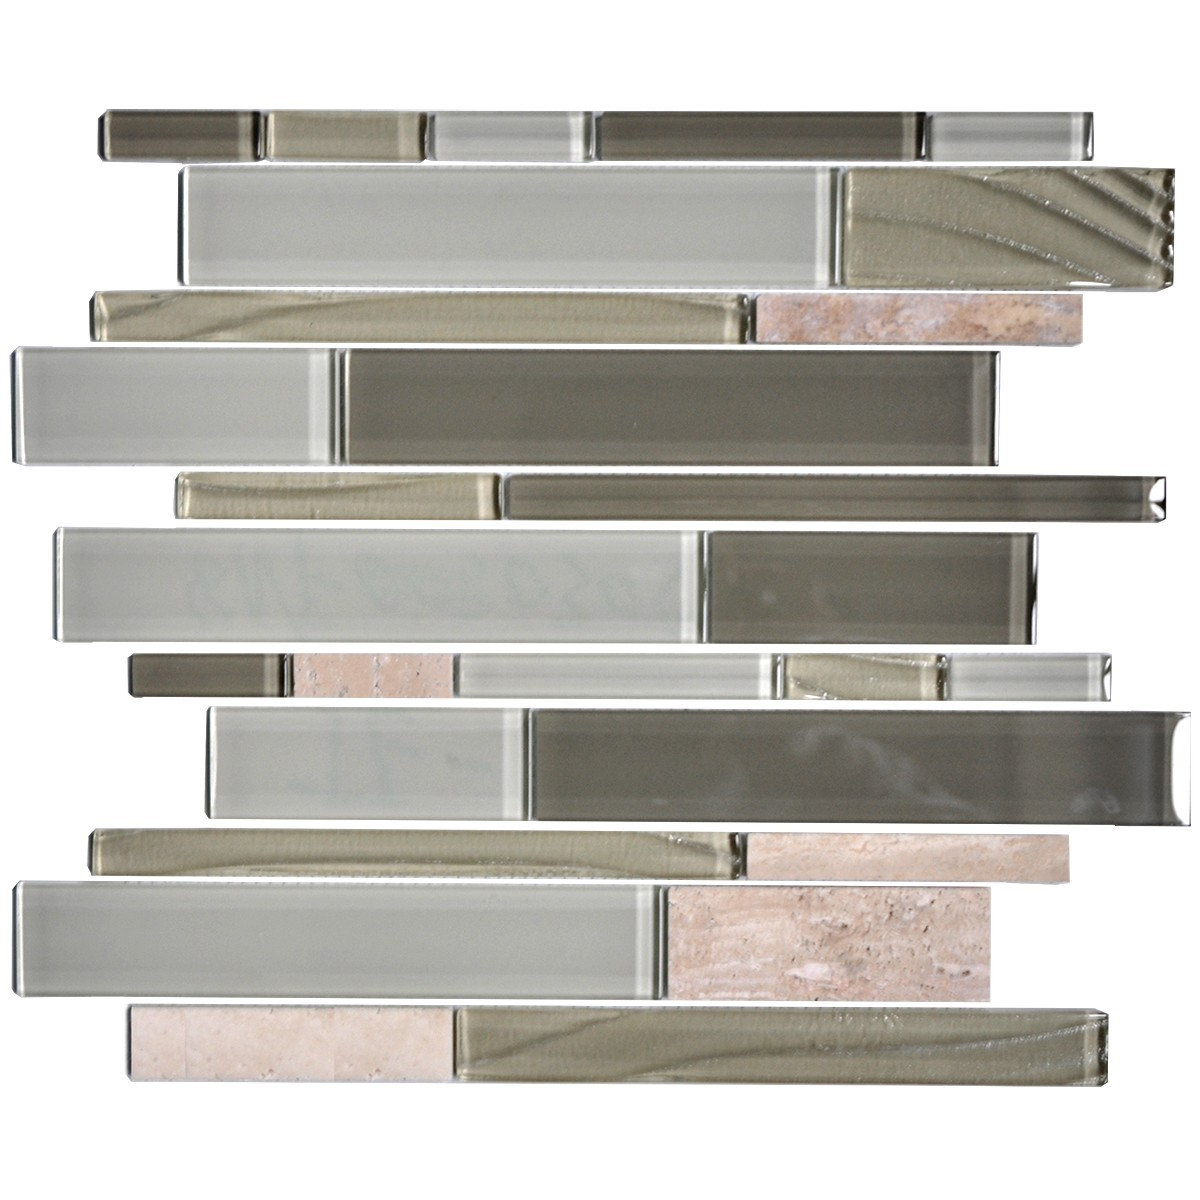 14.2 in. x 11.8 in. Glass and Stone Blend Strip Mosaic Tile - 8mm Thickness (DK-8NF0305-005)